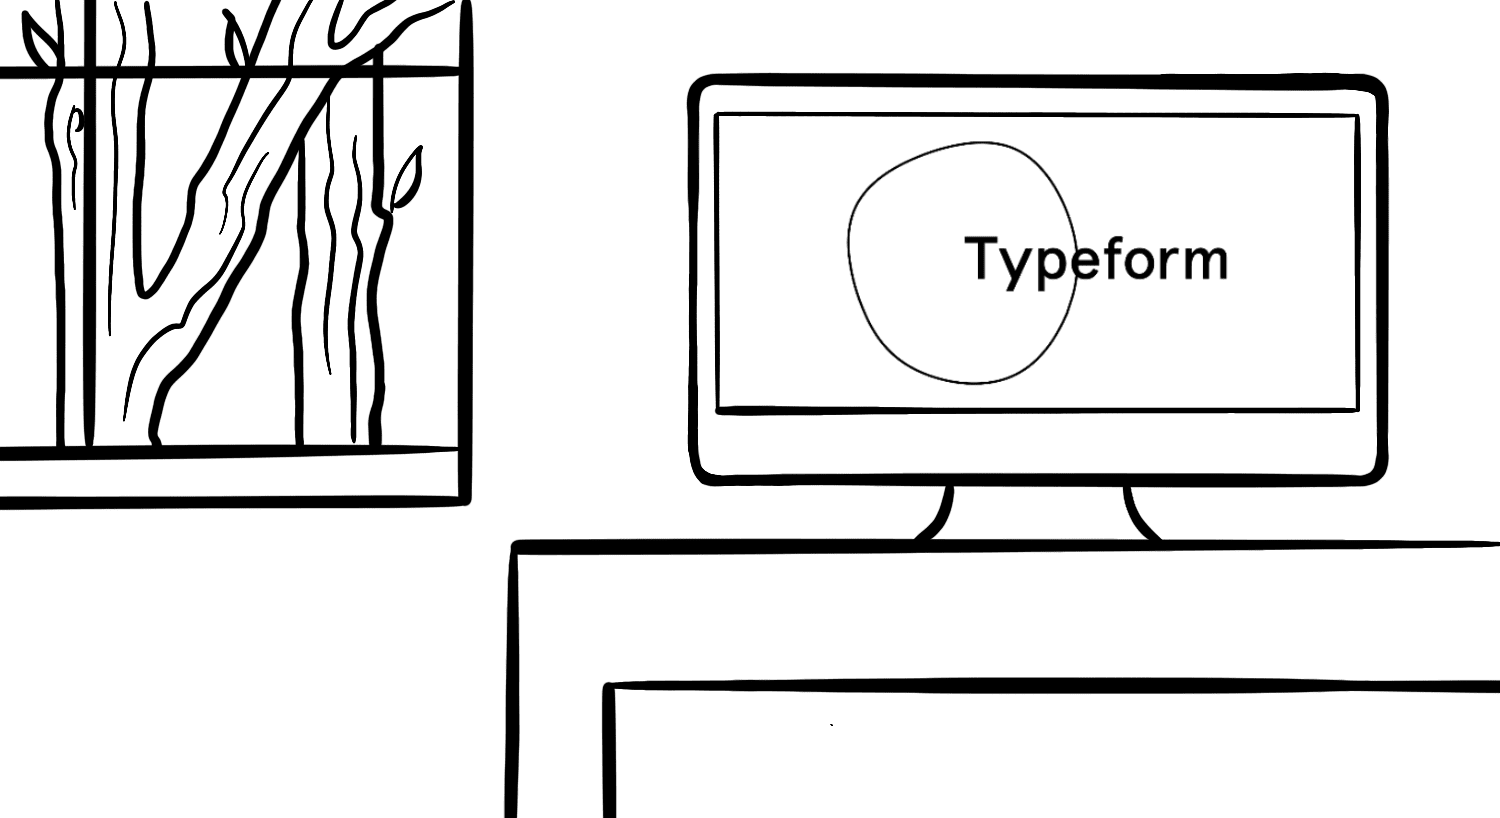 Typeform logo on a computer screen on a desk near a window with a tree in the background